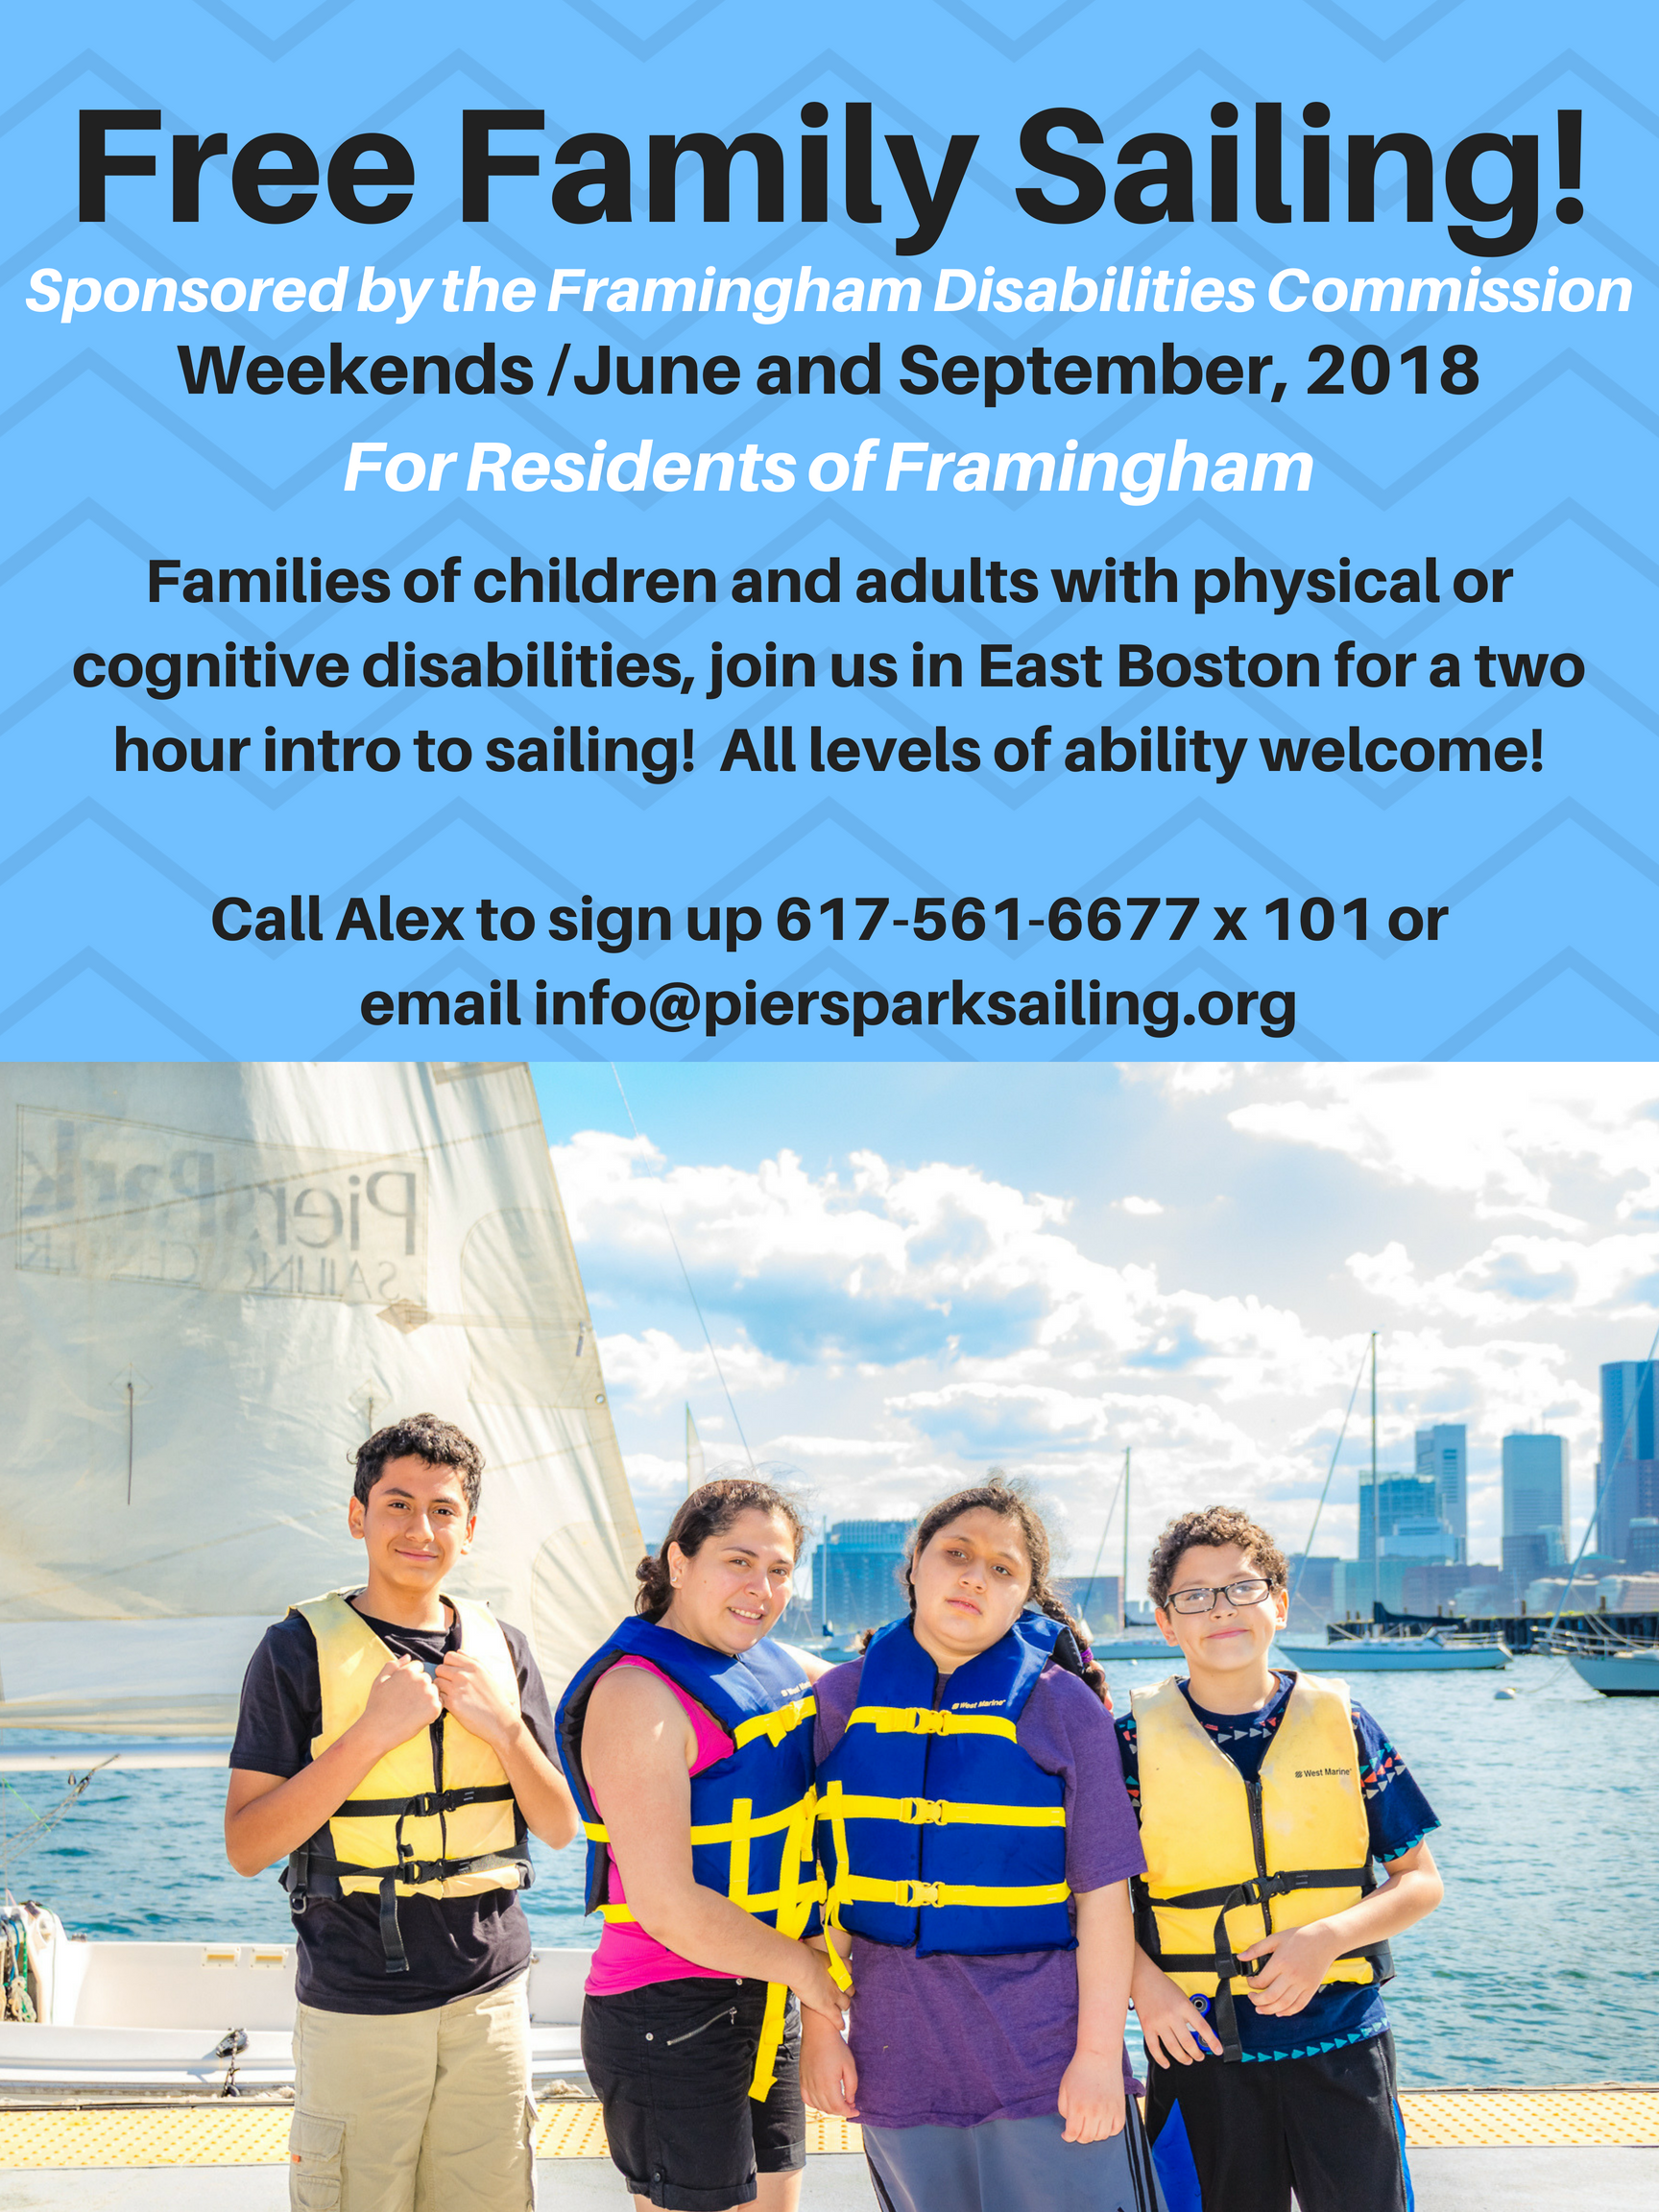 Free Family Sailing Flyer